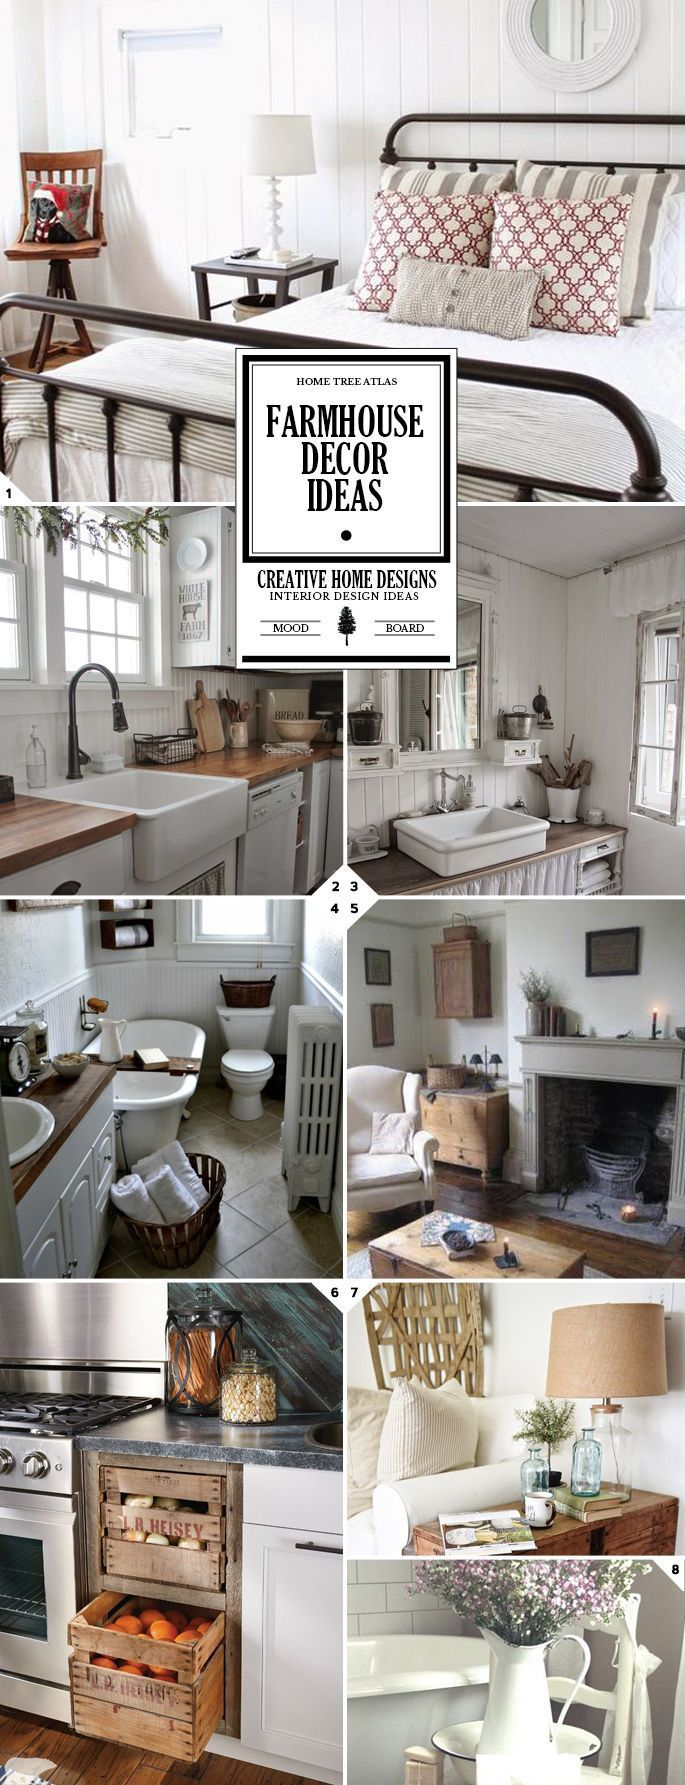 Rustic Kitchen Accessories 17 Best Ideas About Rustic Accessories And Decor On Pinterest